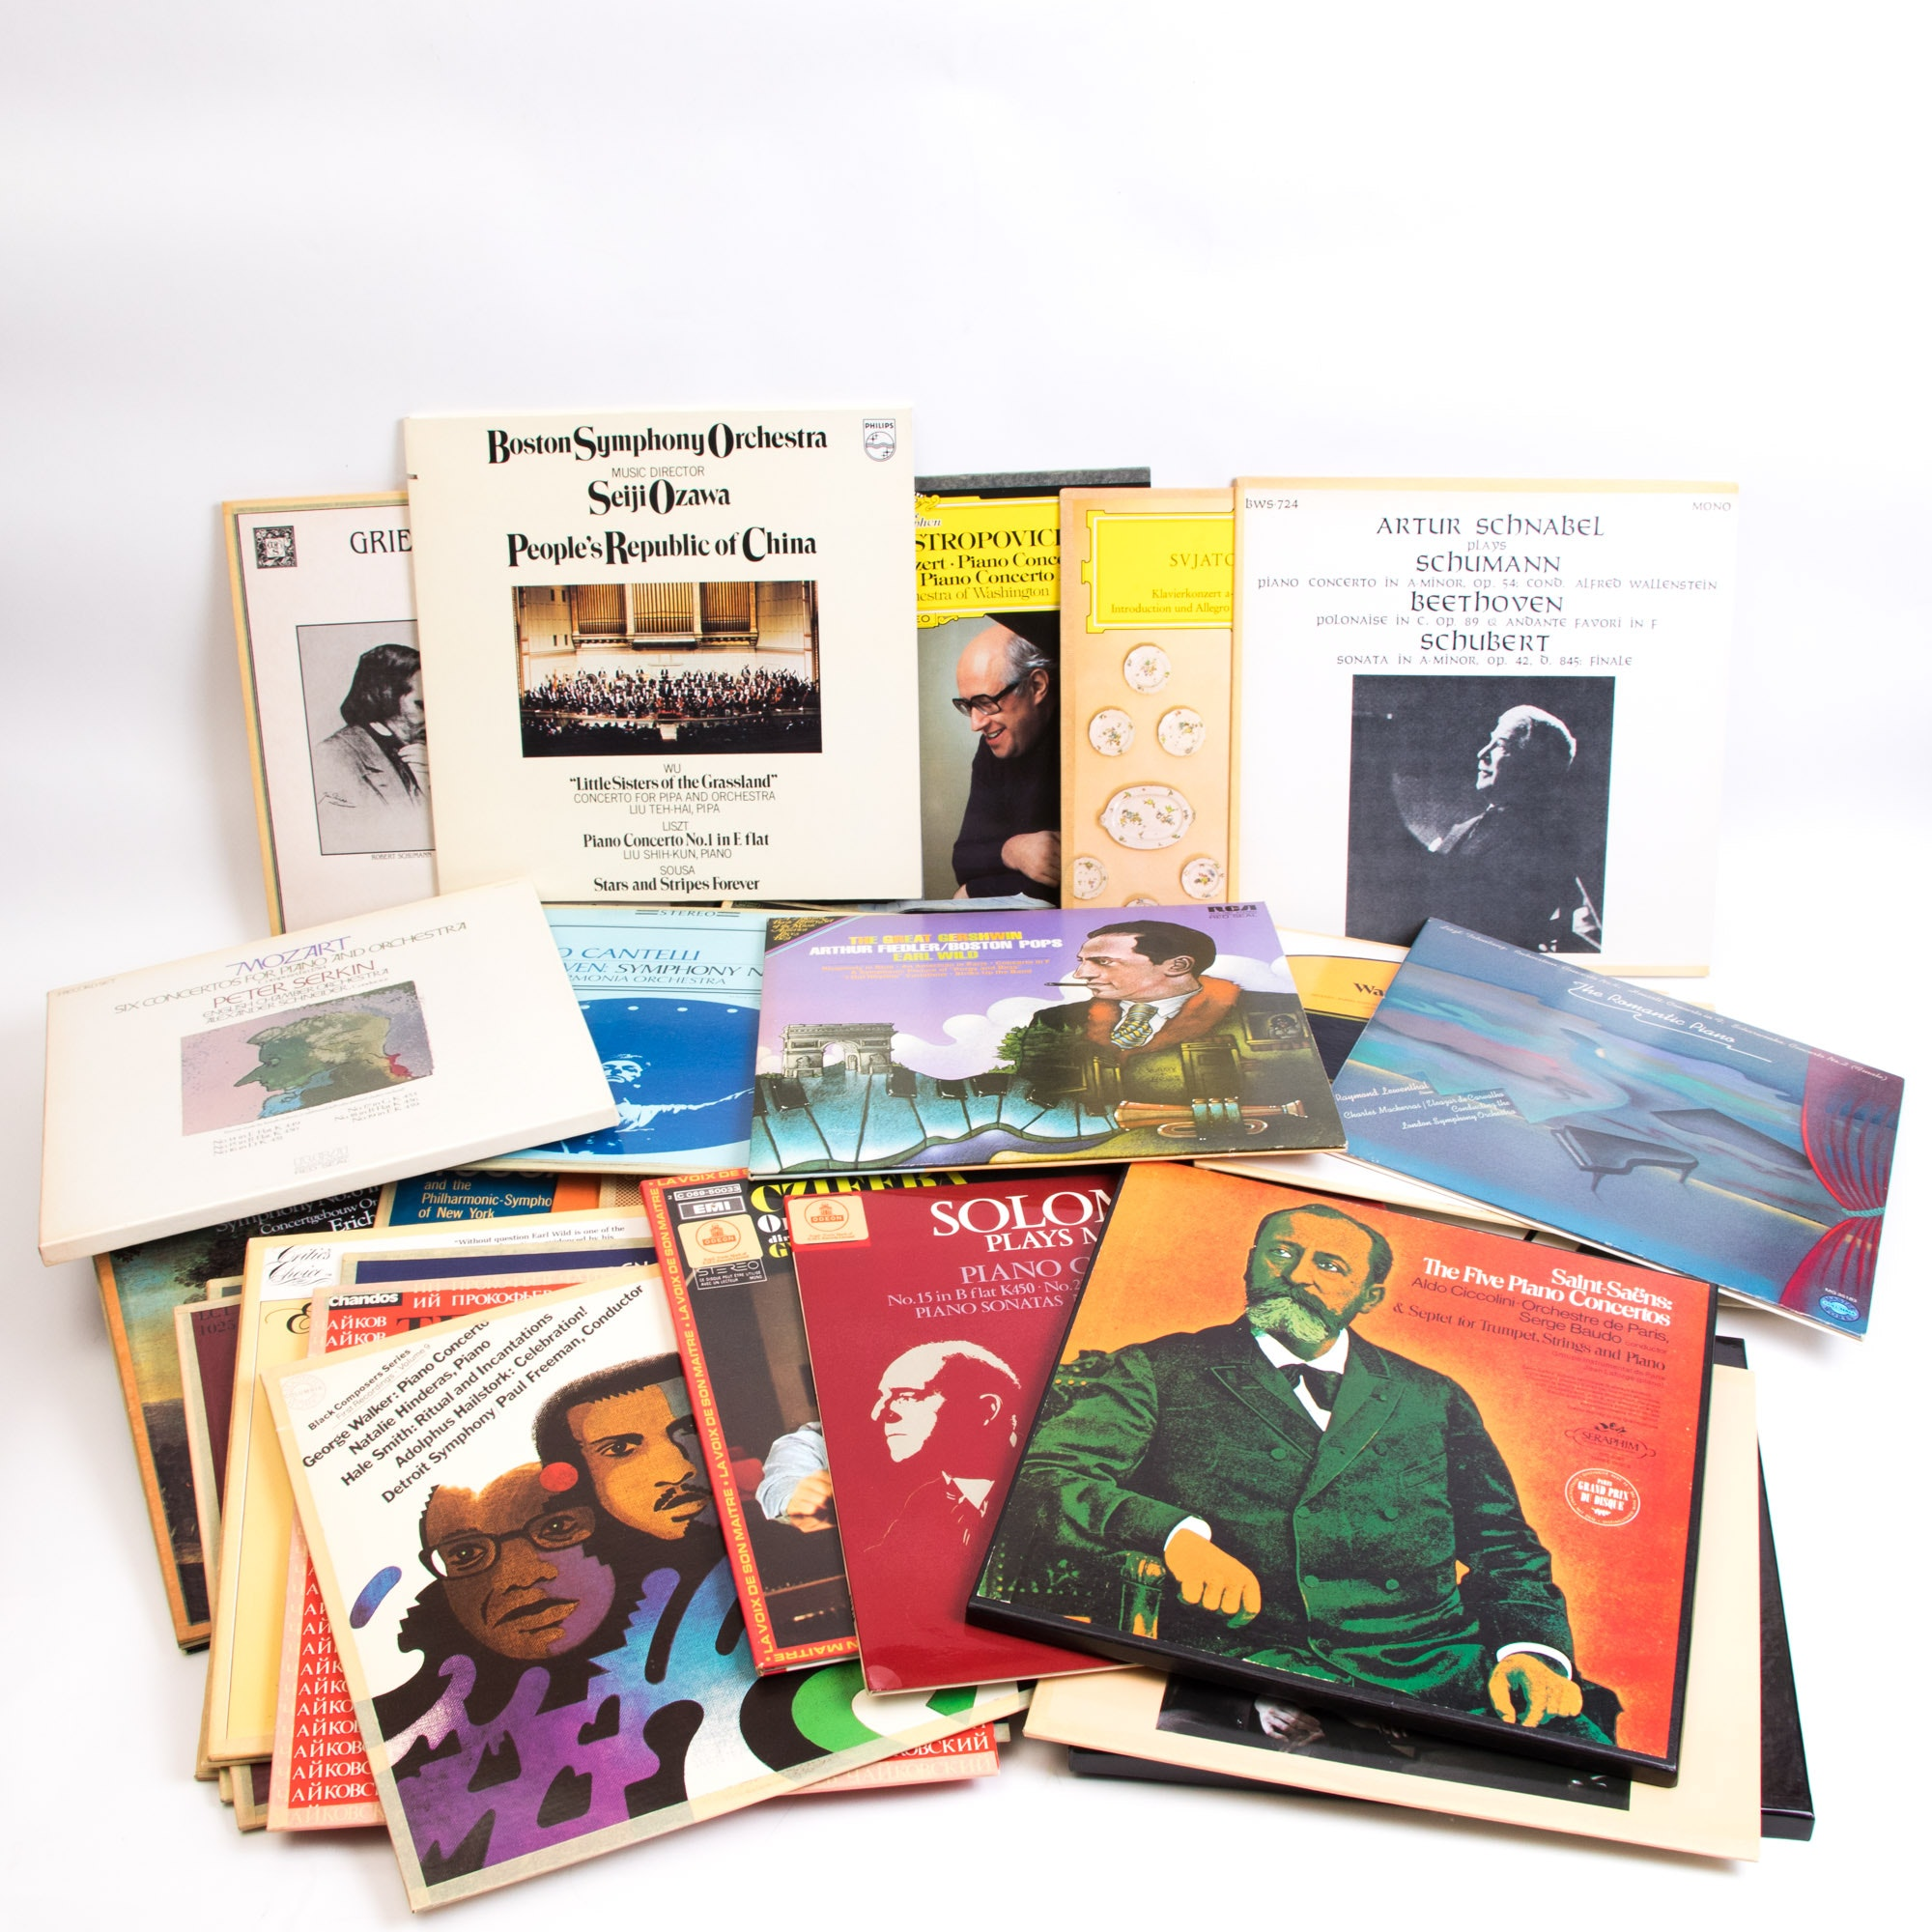 Assortment of Classical and Orchestral LP Records